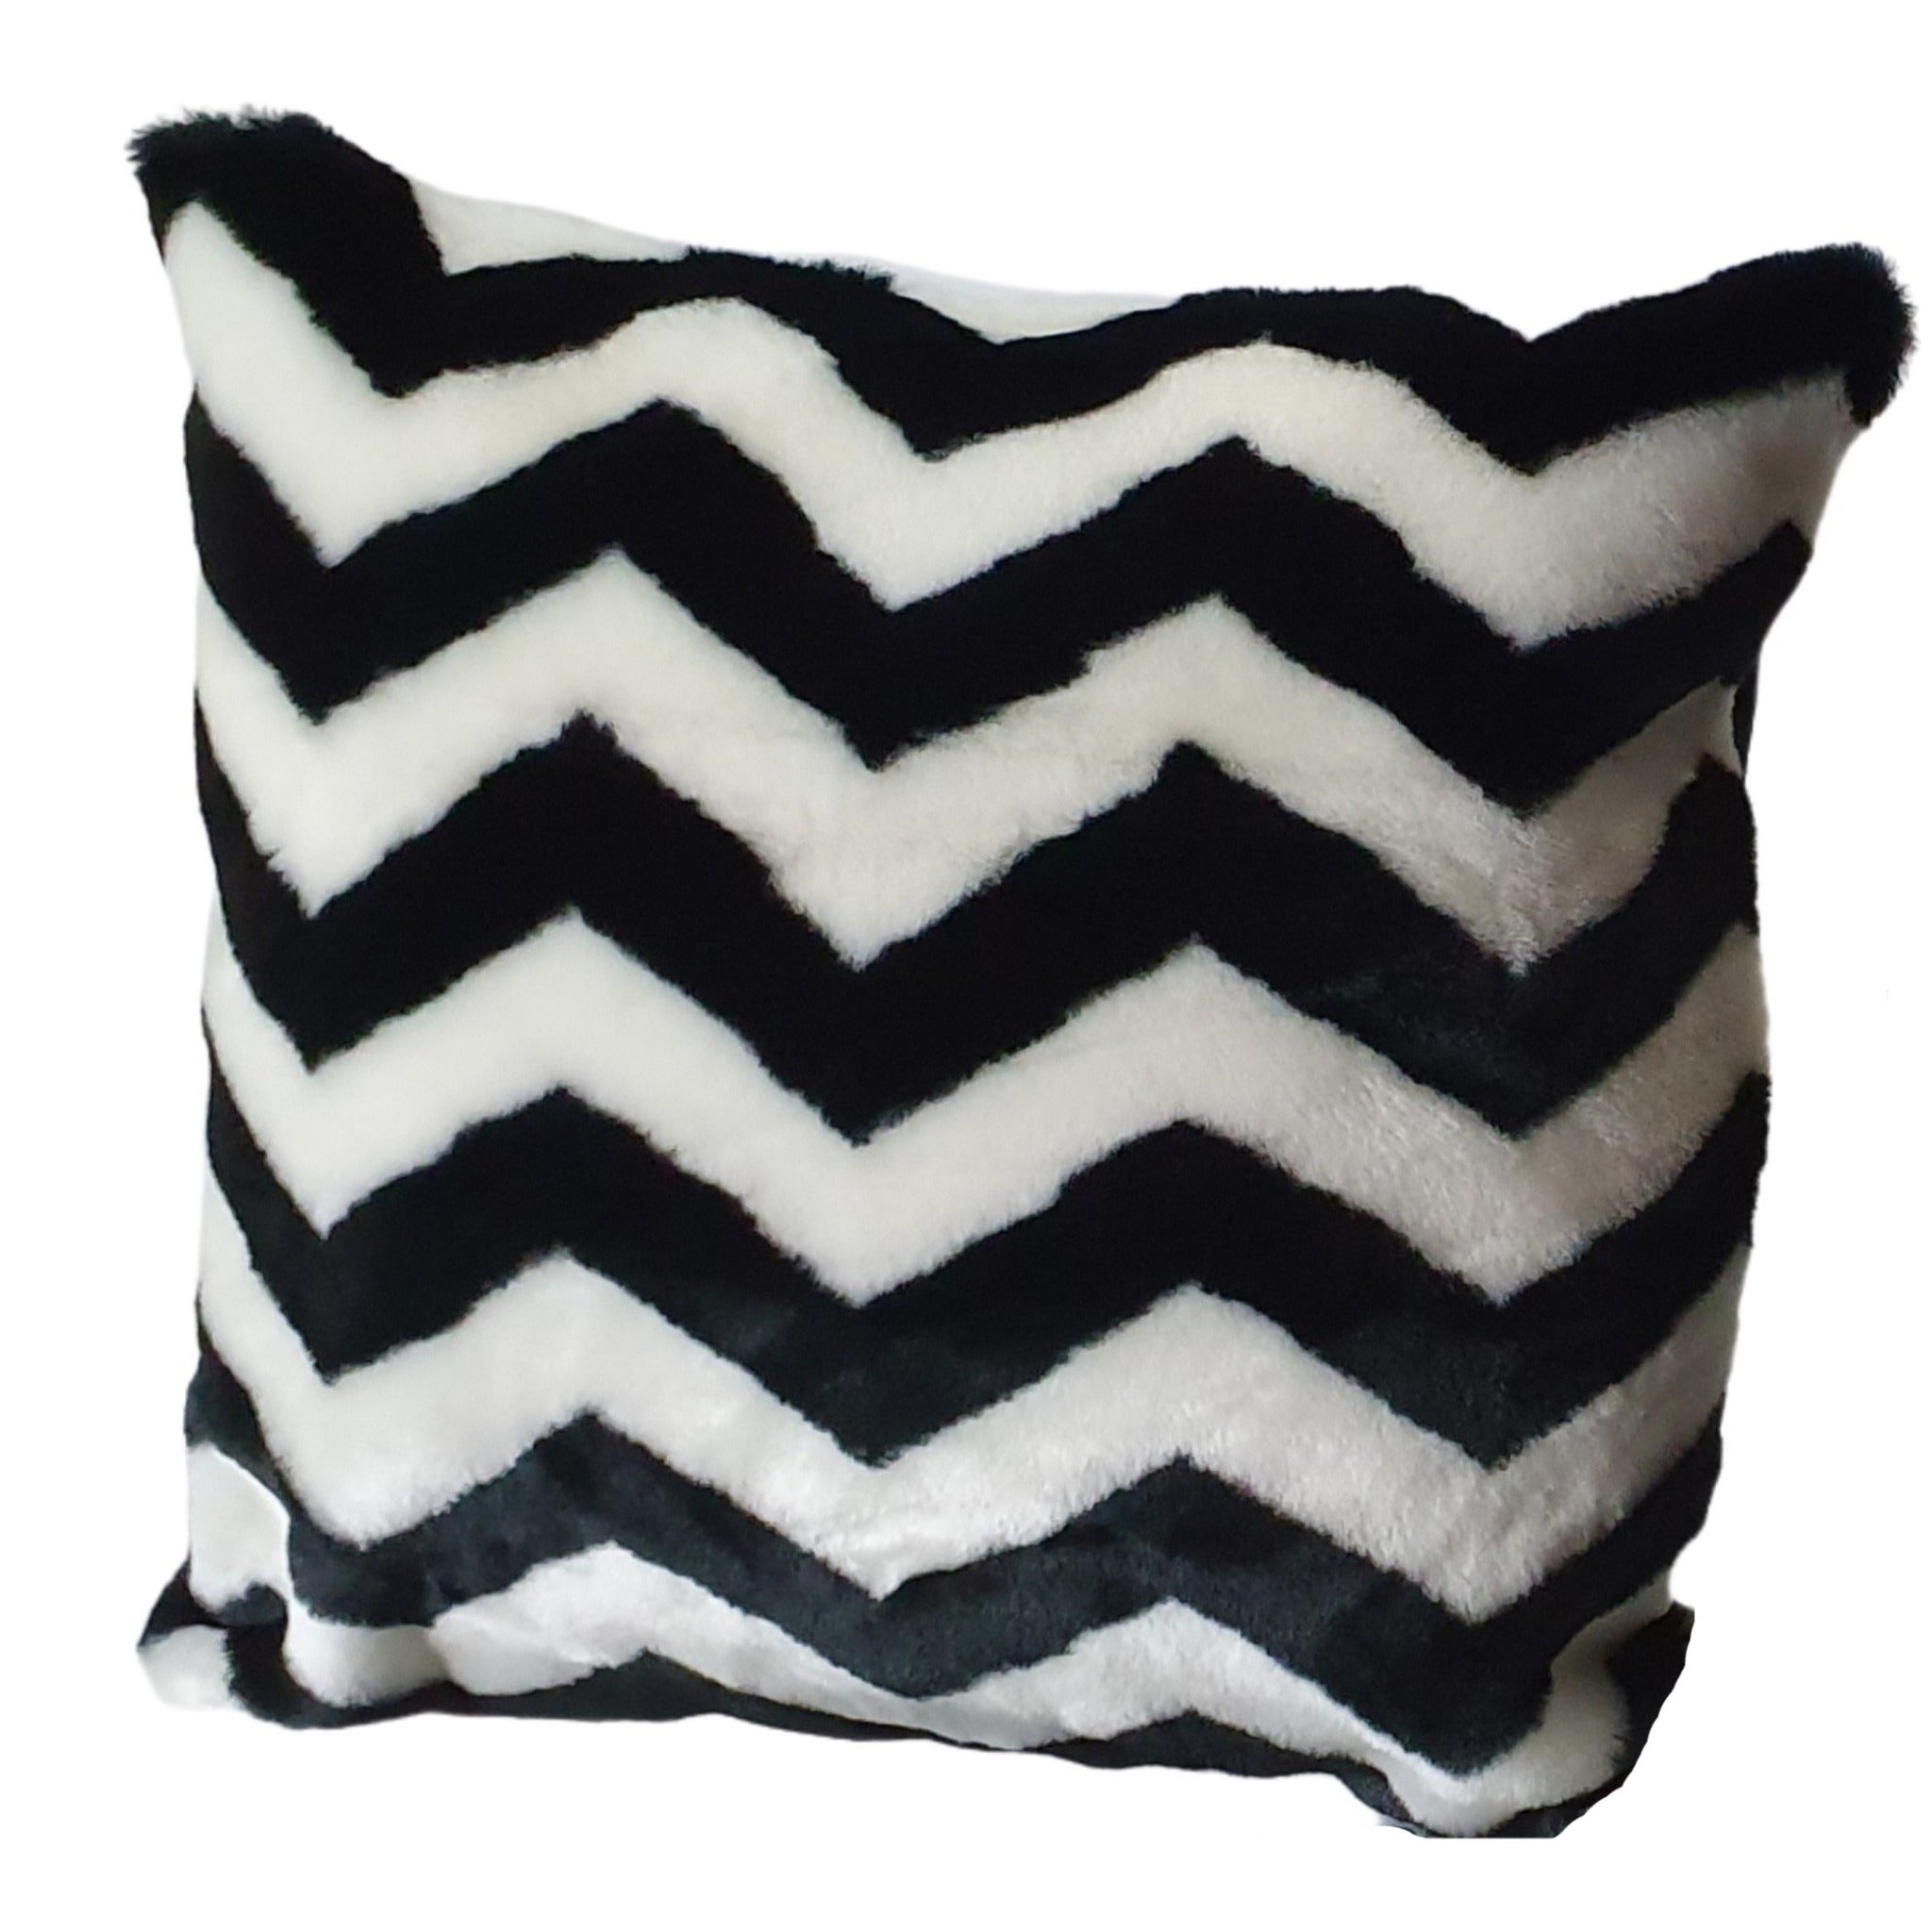 Faux fur cushion black and white